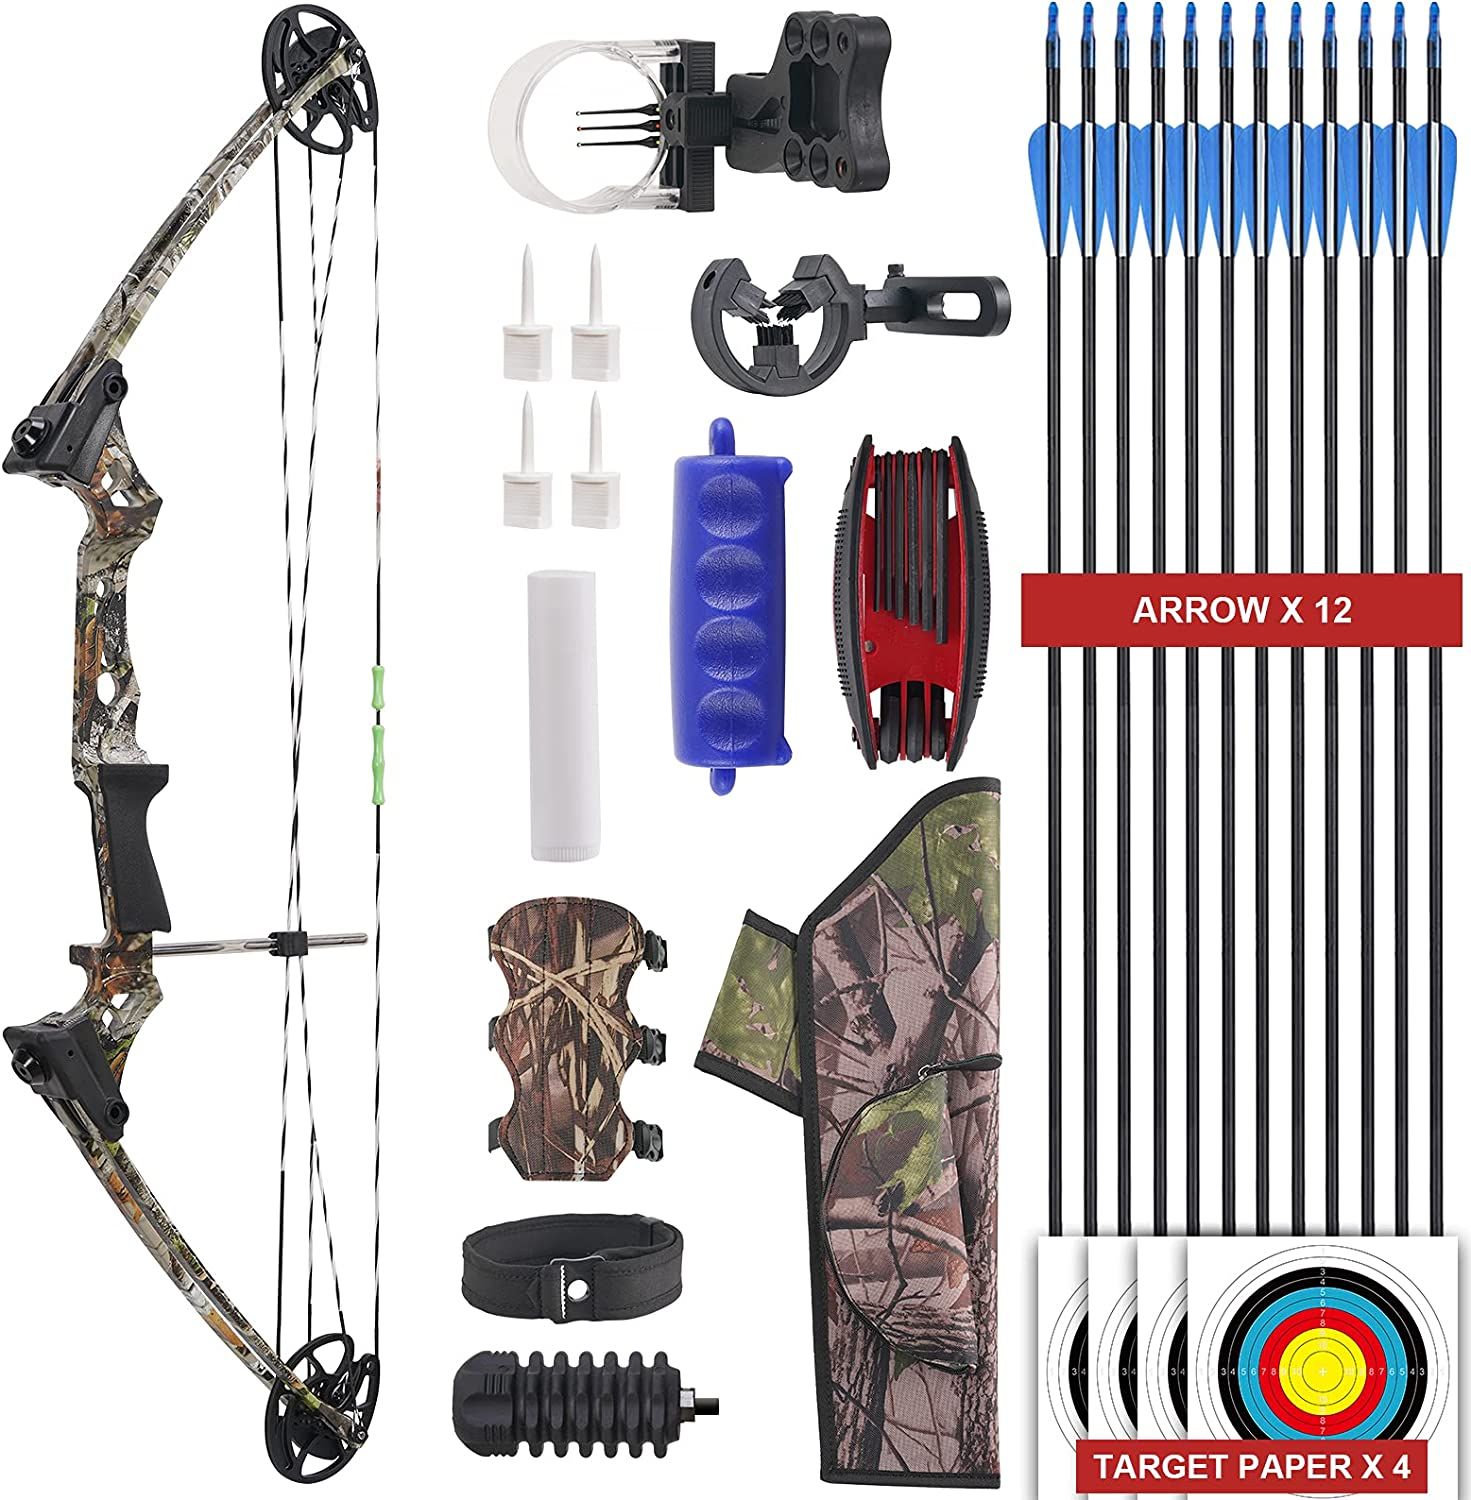 Aimdor Youth Compound Bow and Tucson Mall Fresno Mall Archery wit Set Arrow